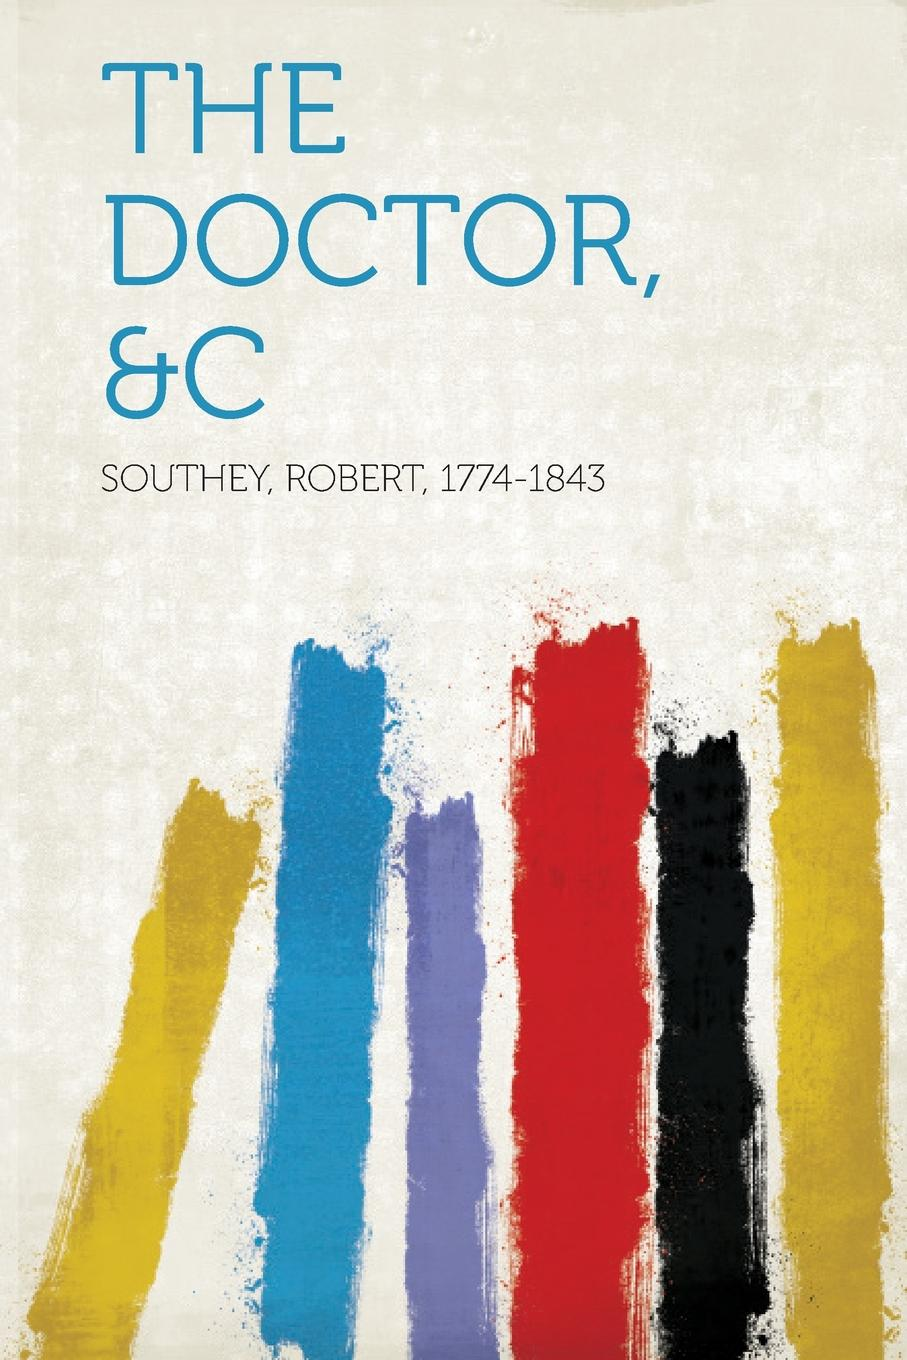 The Doctor, .C